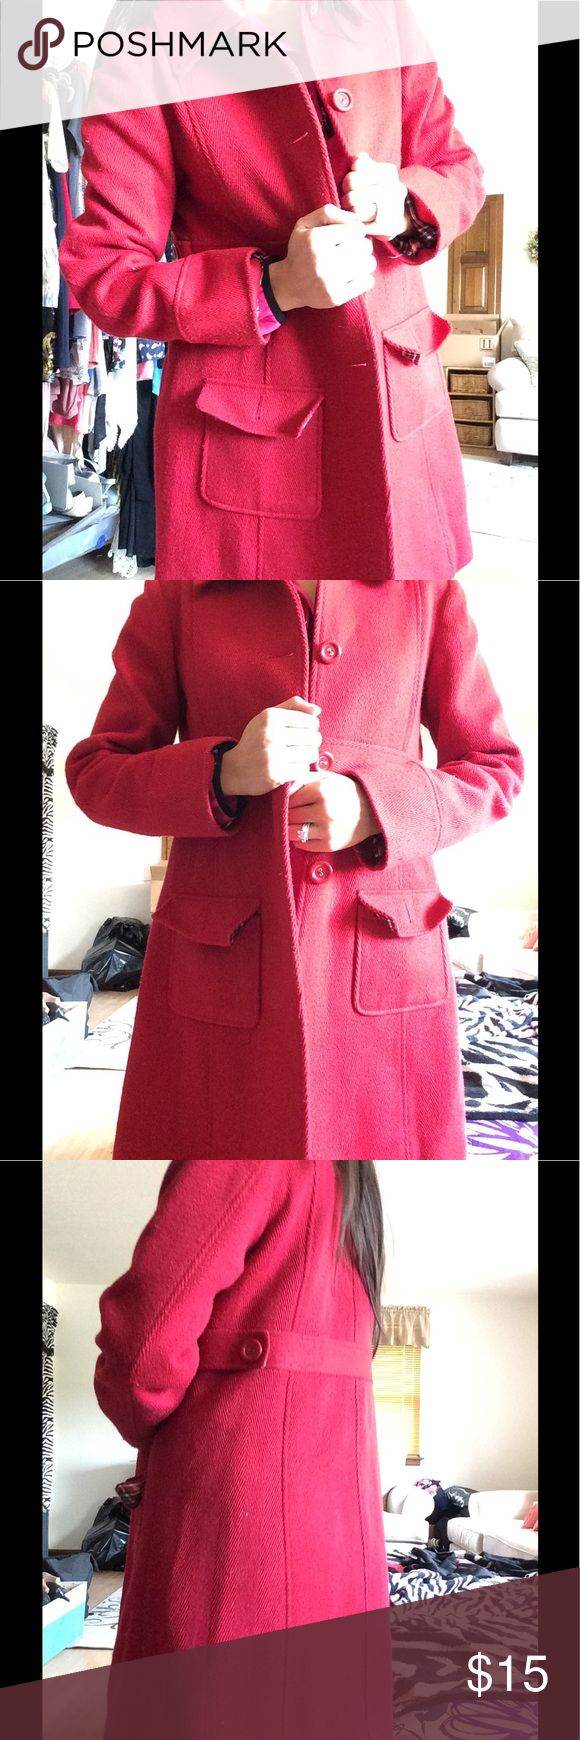 Red Pea Coat A single breasted red coat, waiting for you to wear! Never been worn and sits in the back of my closet. Make it yours! It will be fall soon! Cherokee Jackets & Coats Pea Coats